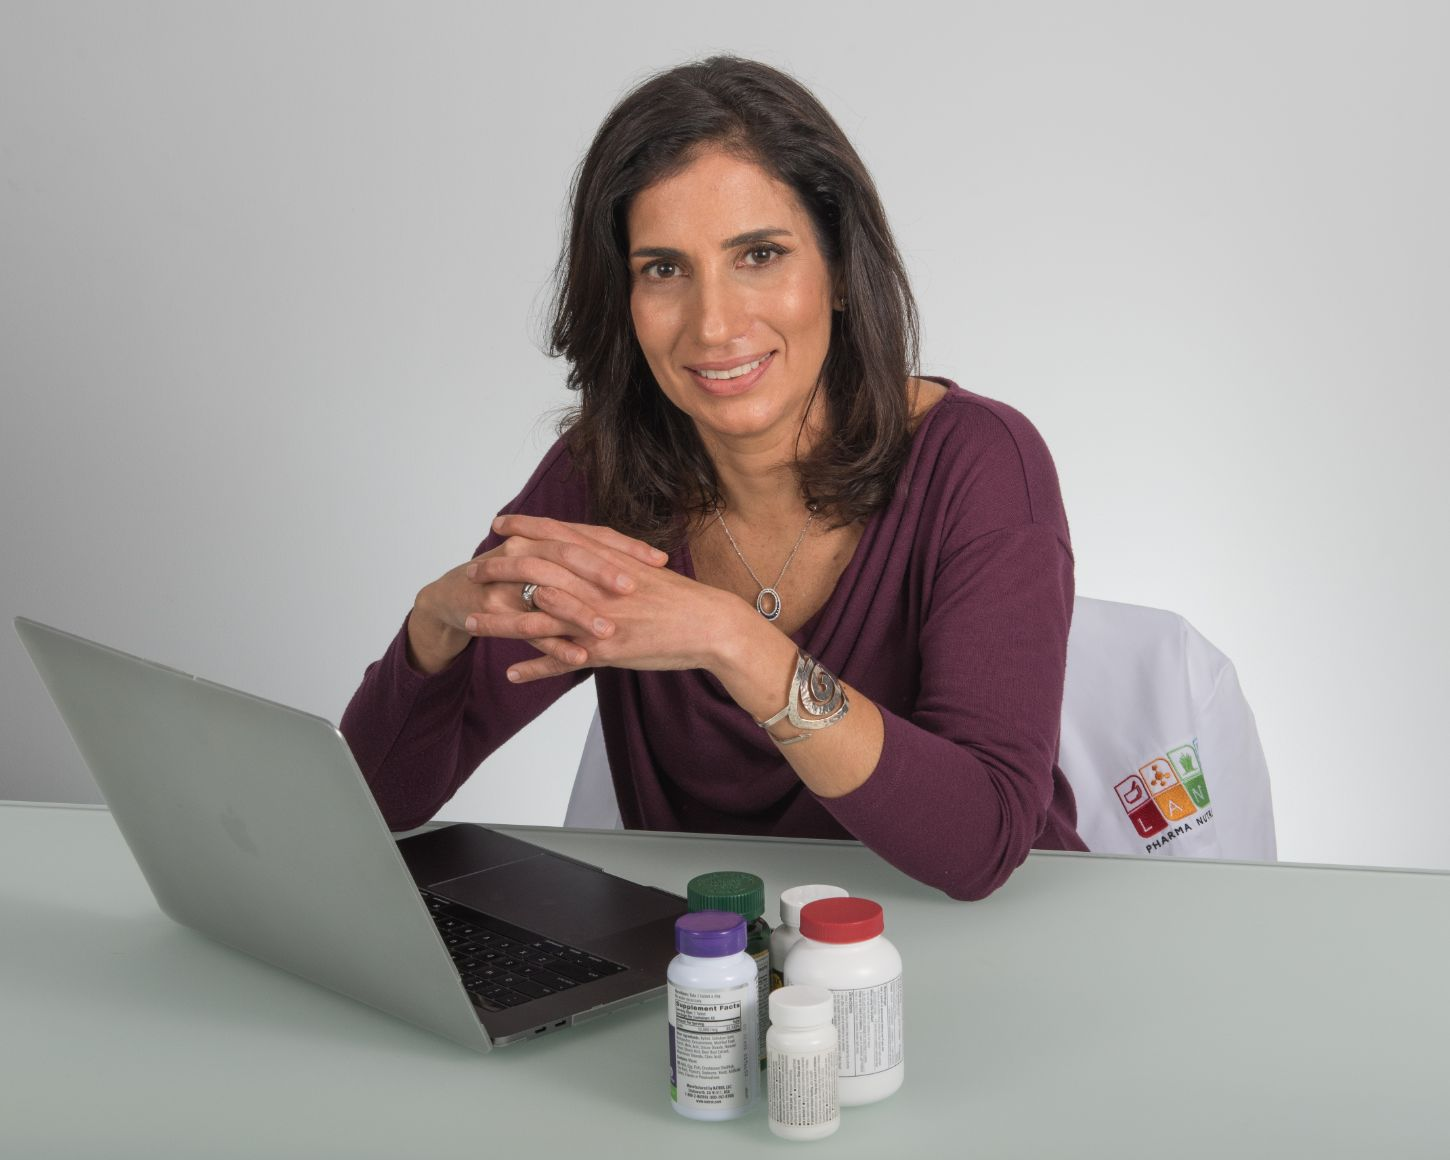 Taking a Closer Look at Preventative Care with Ursula Munoz-Najar